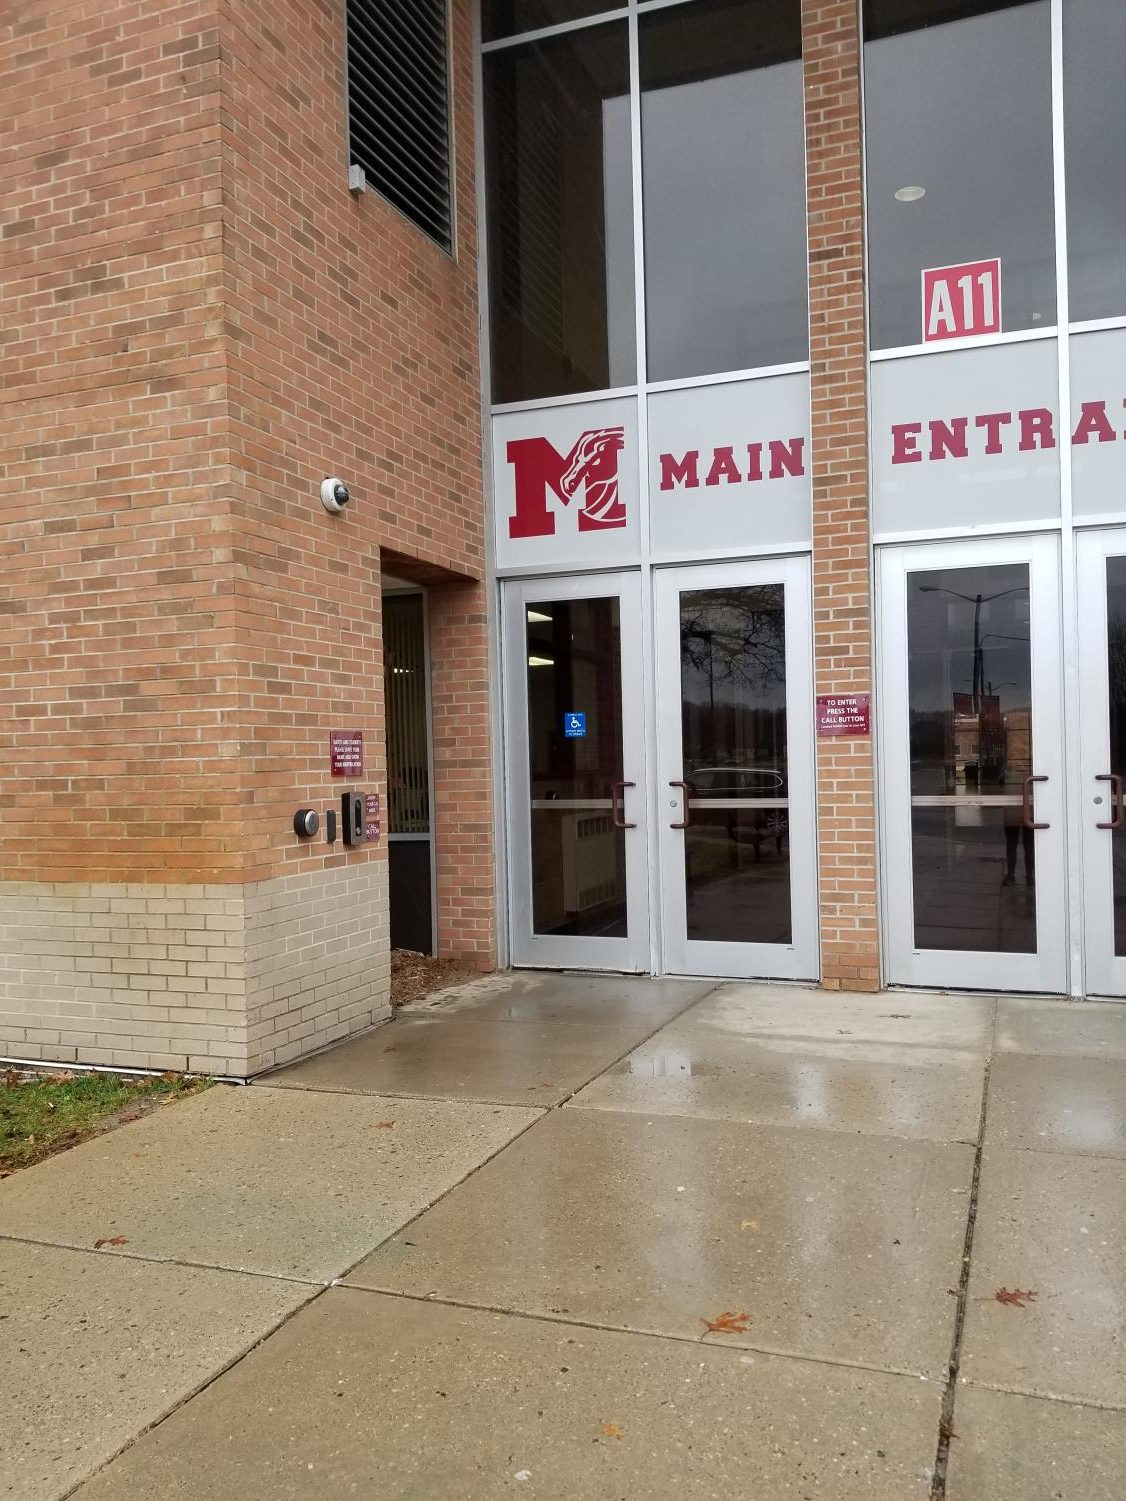 Current entryway to Milford High School (Photo by Riley Coesens)